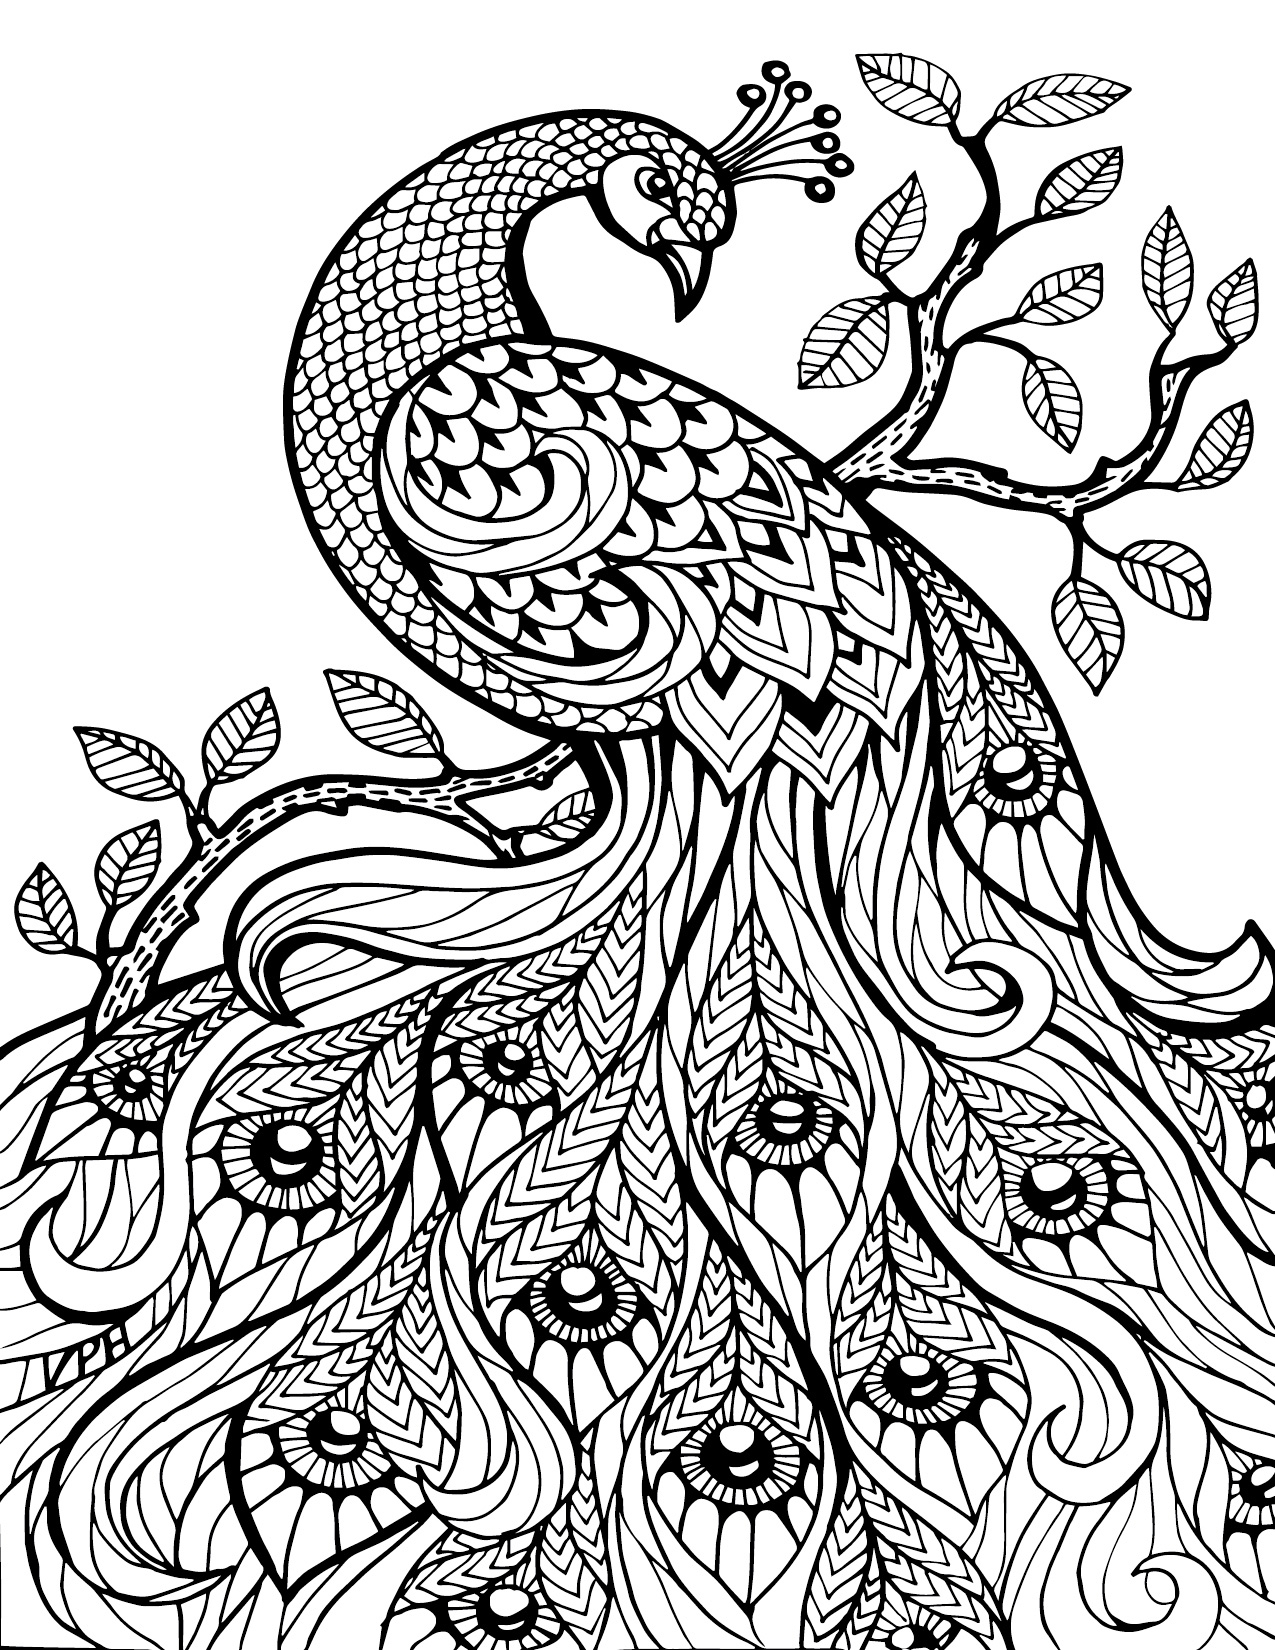 free downloadable adult coloring pages - adult coloring pages